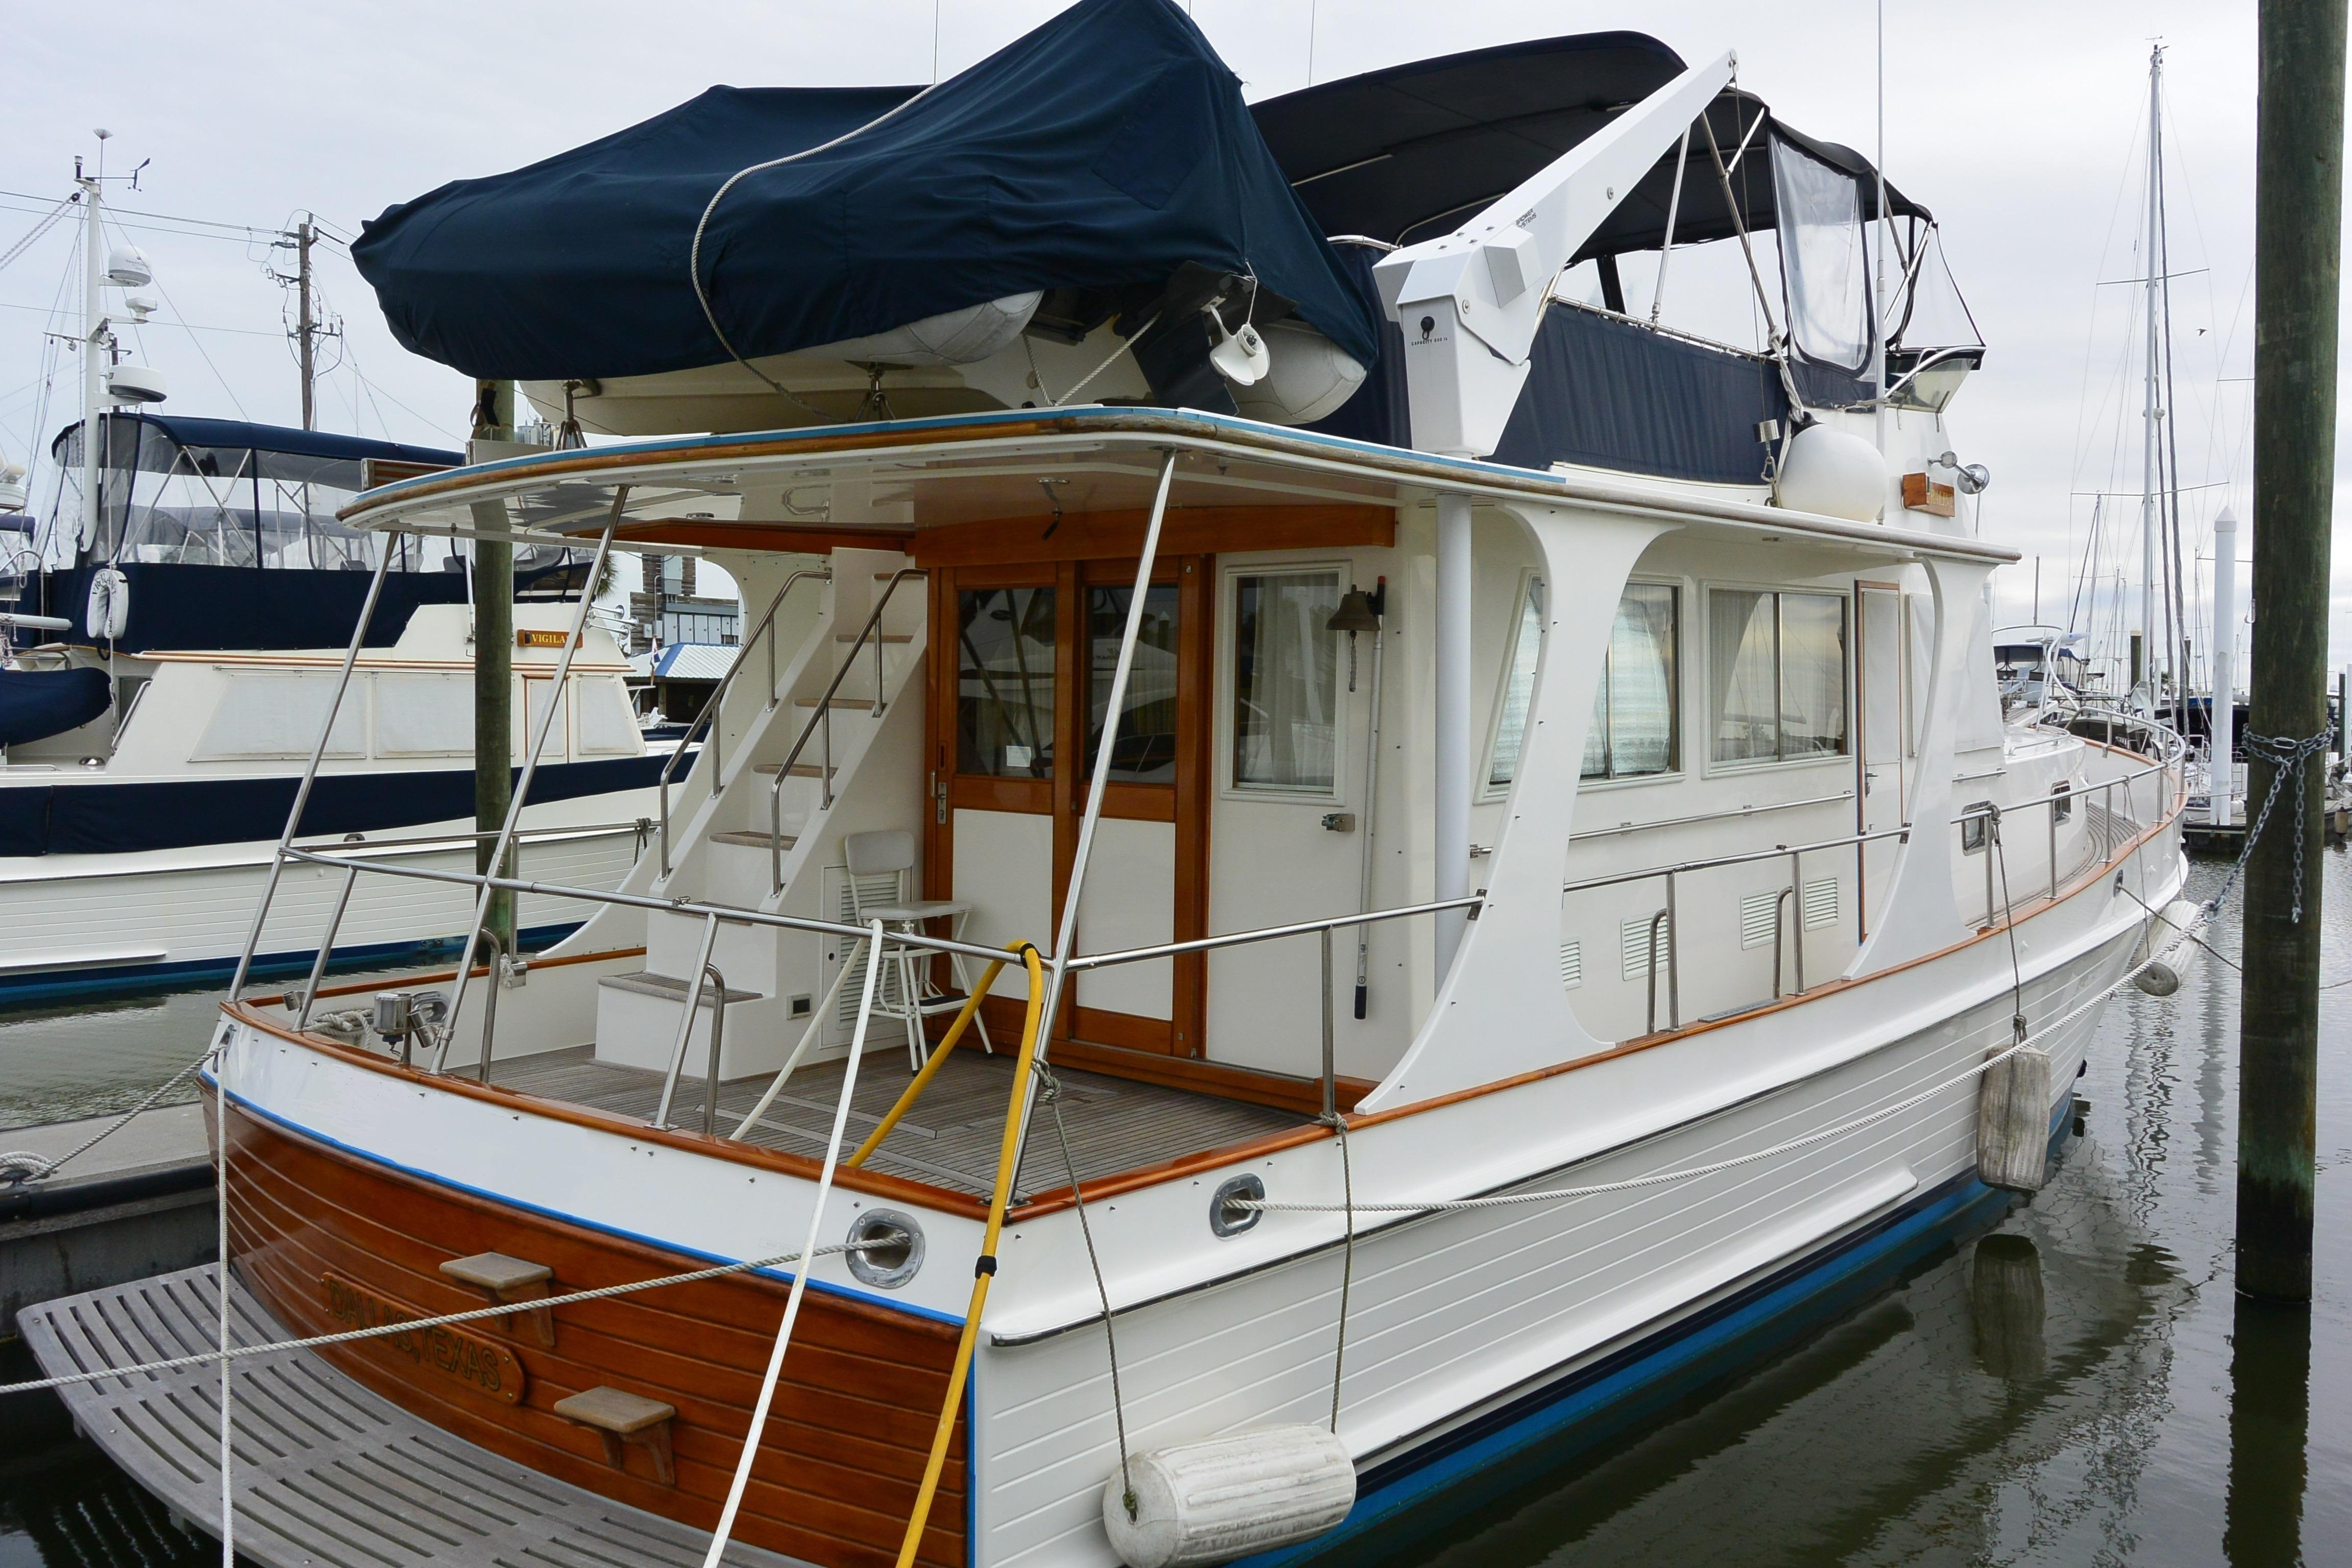 Side view - aft deck